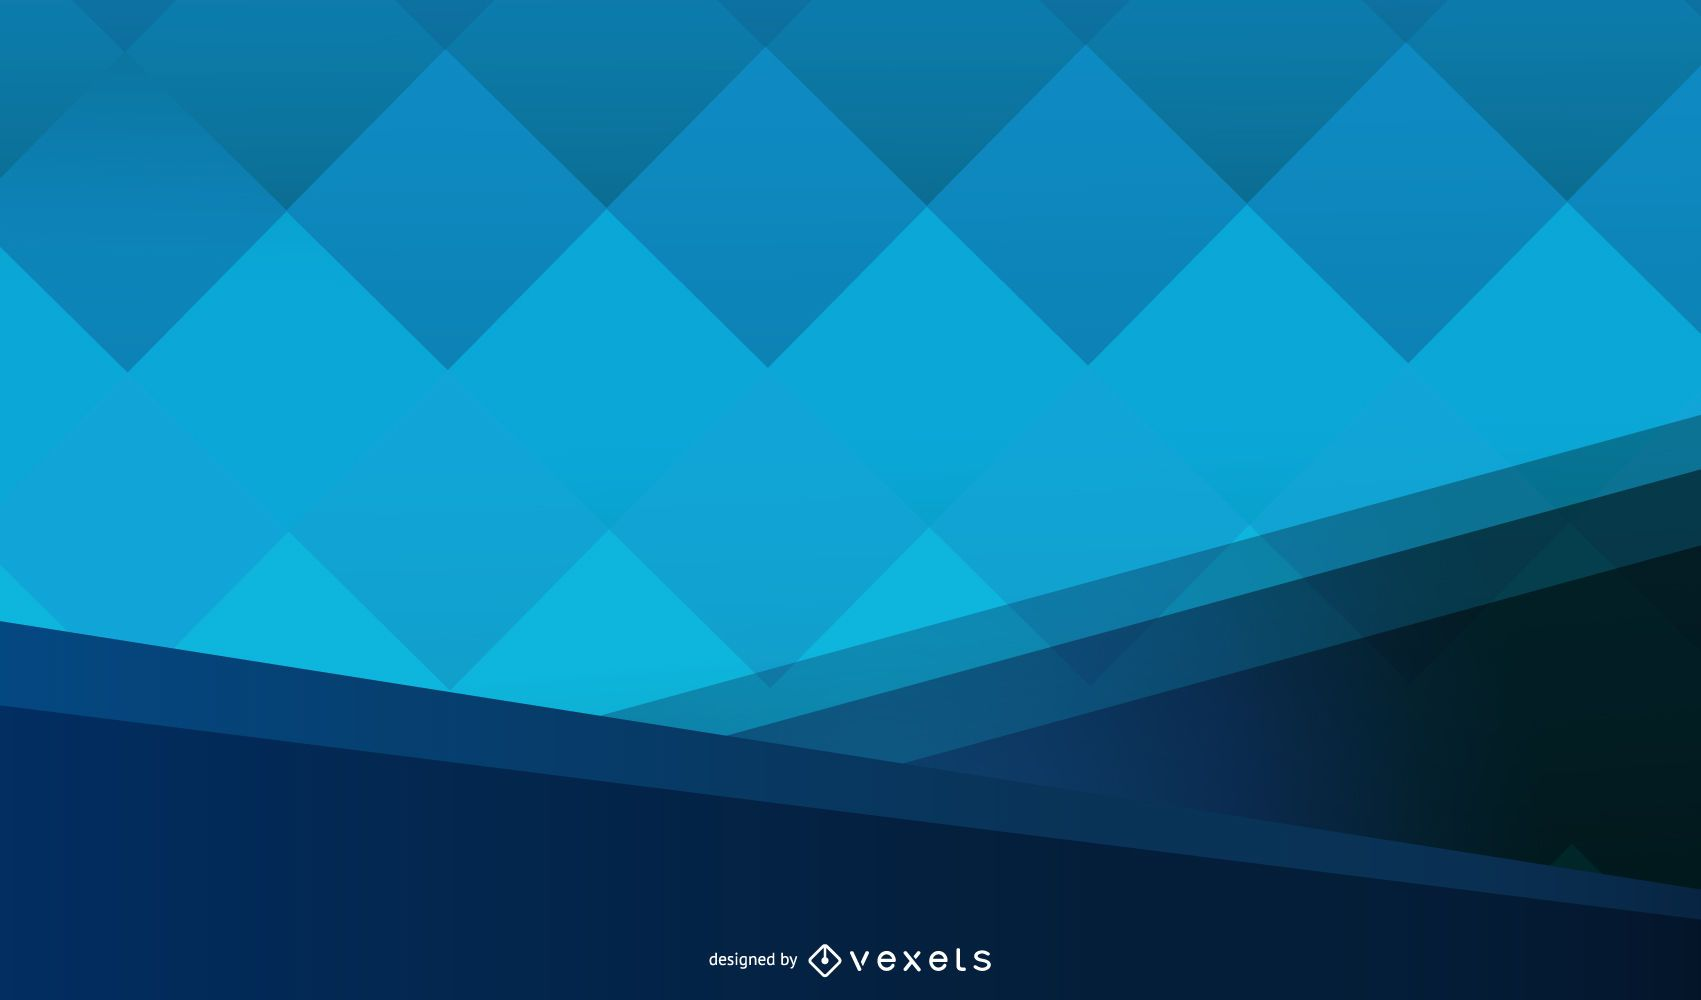 Dark Split Background with Blue Cubes in Middle